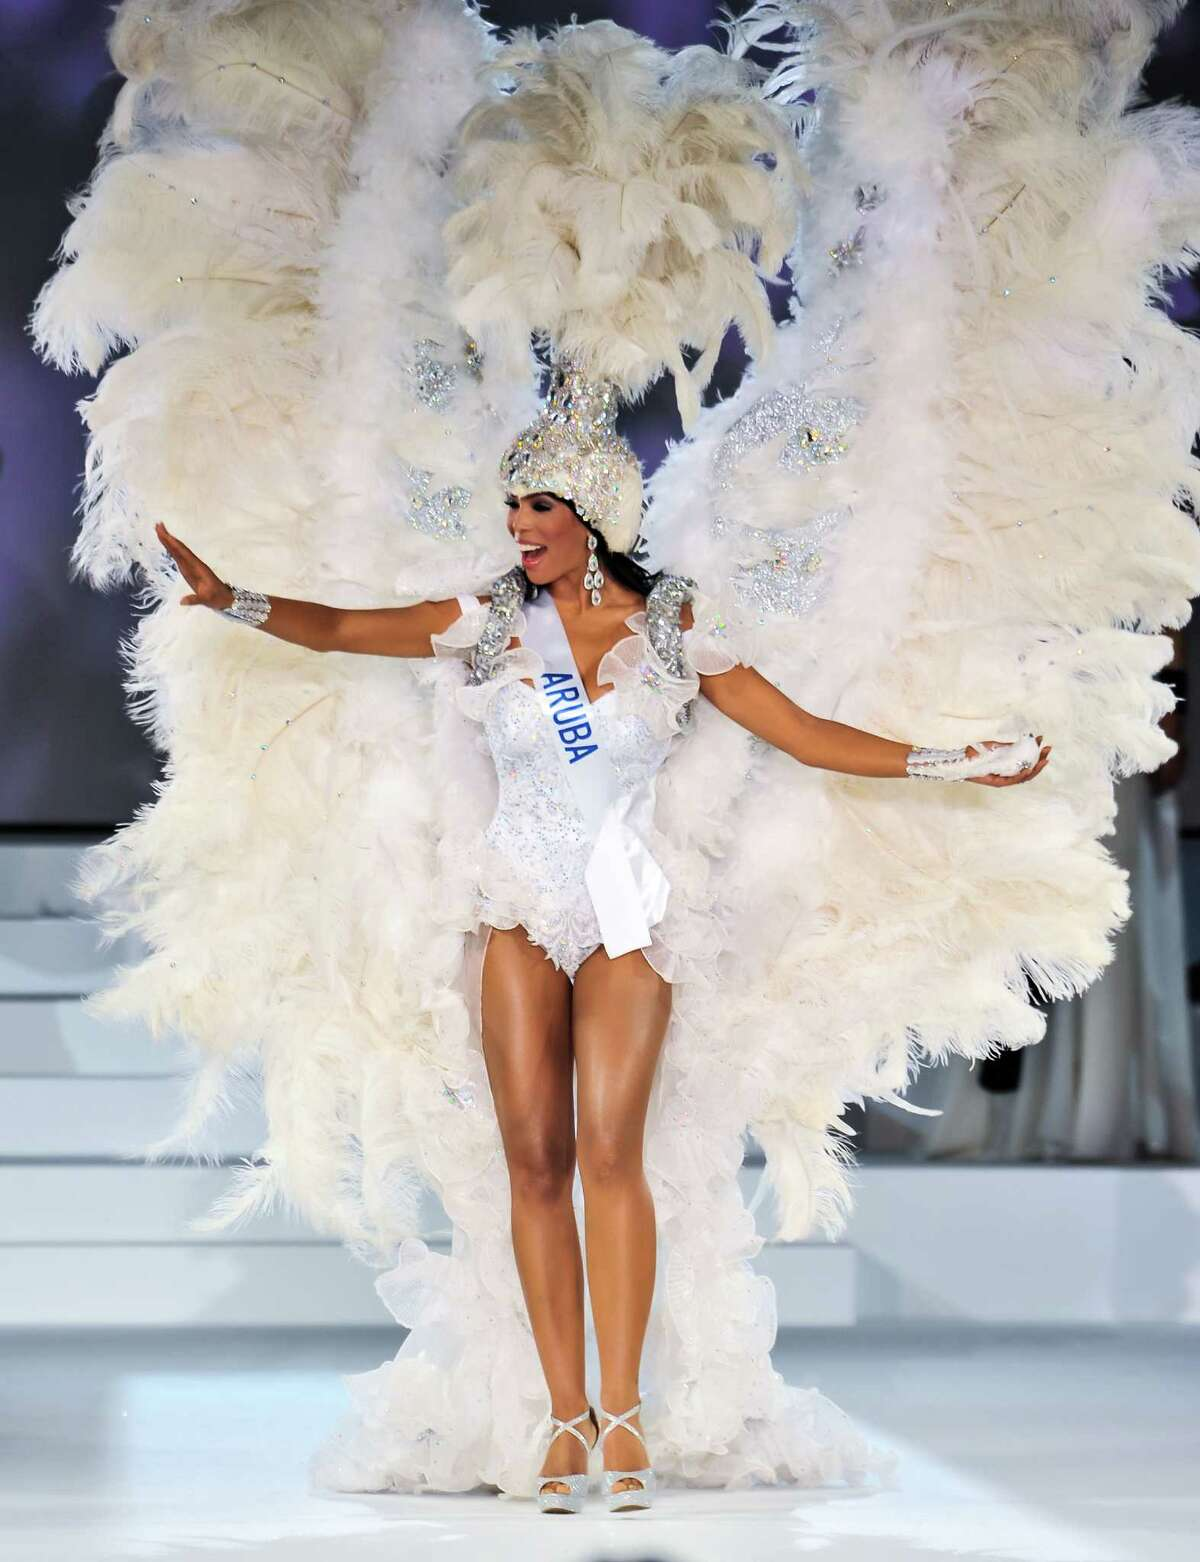 Miss Aruba Francis Massiel Sosa competes during The 54th Miss International Beauty Pageant 2014 at Grand Prince Hotel New Takanawa on November 11, 2014 in Tokyo, Japan.